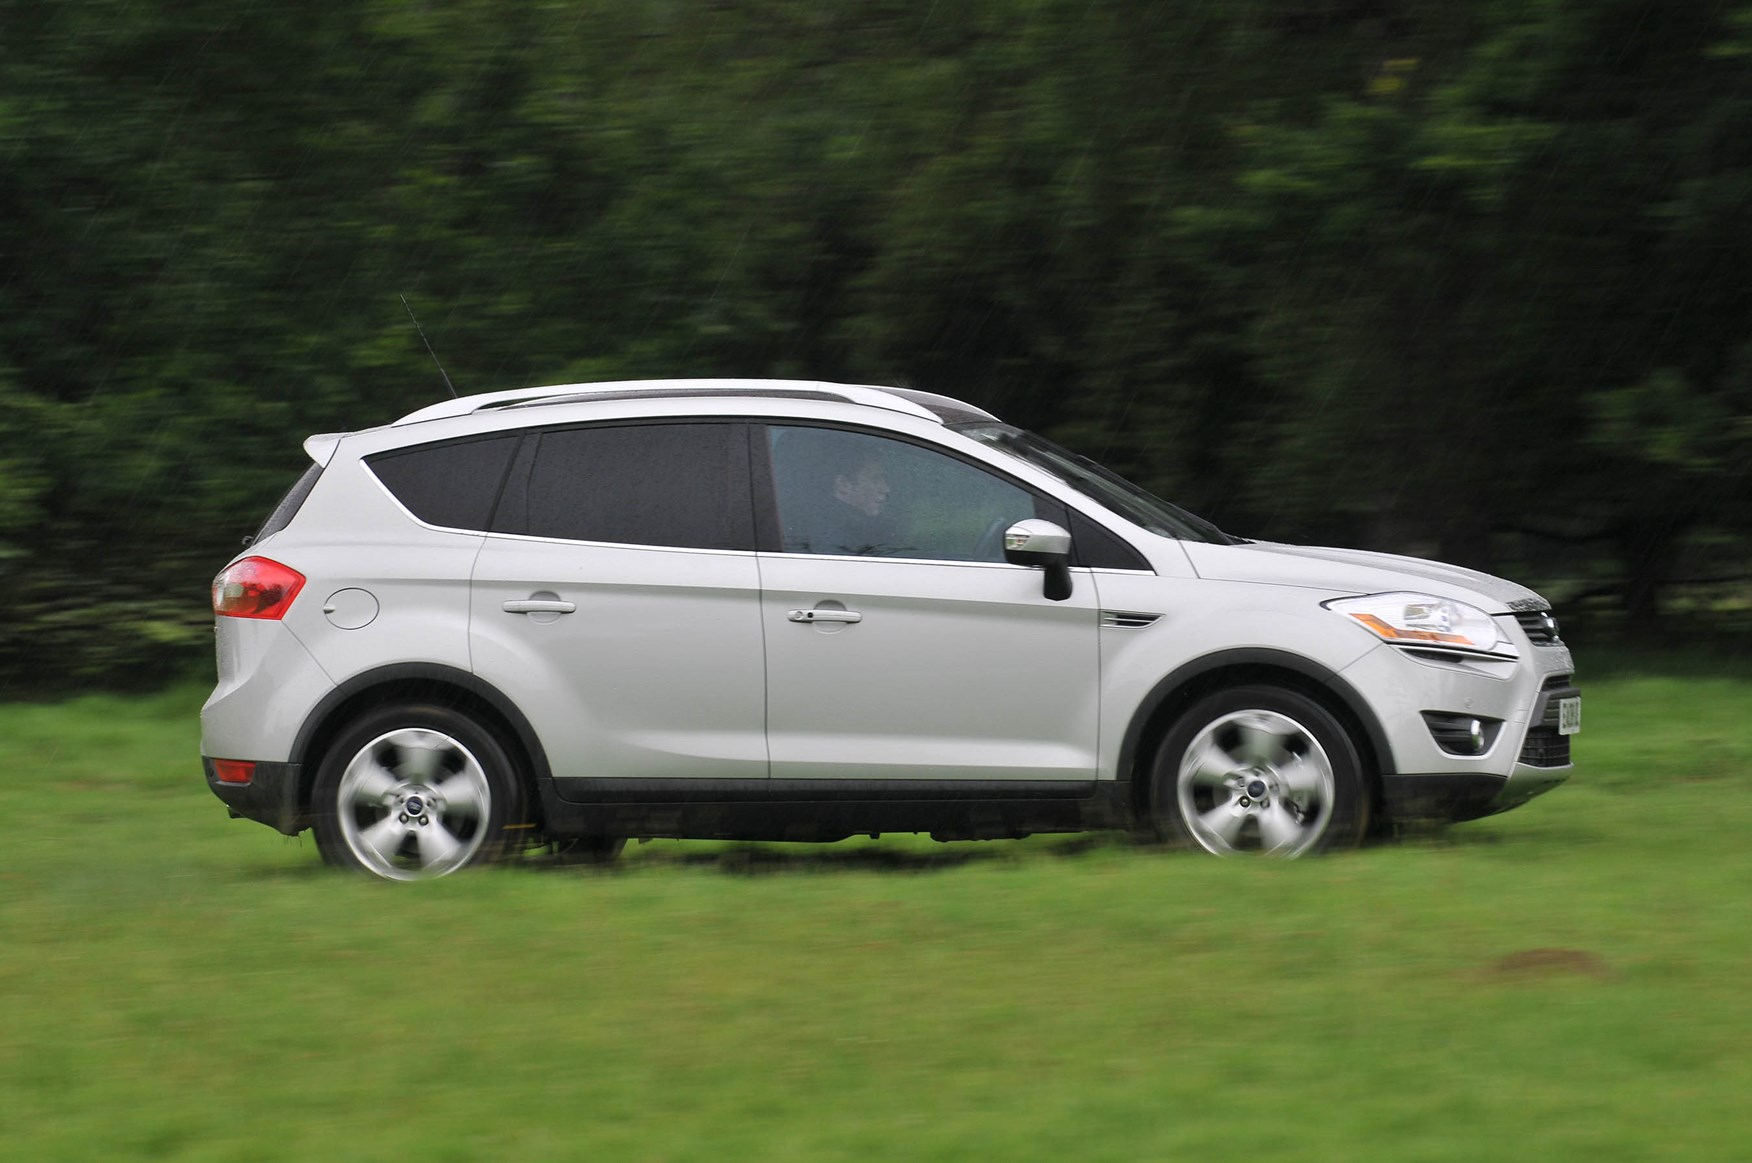 View all images of the ford kuga 08 12